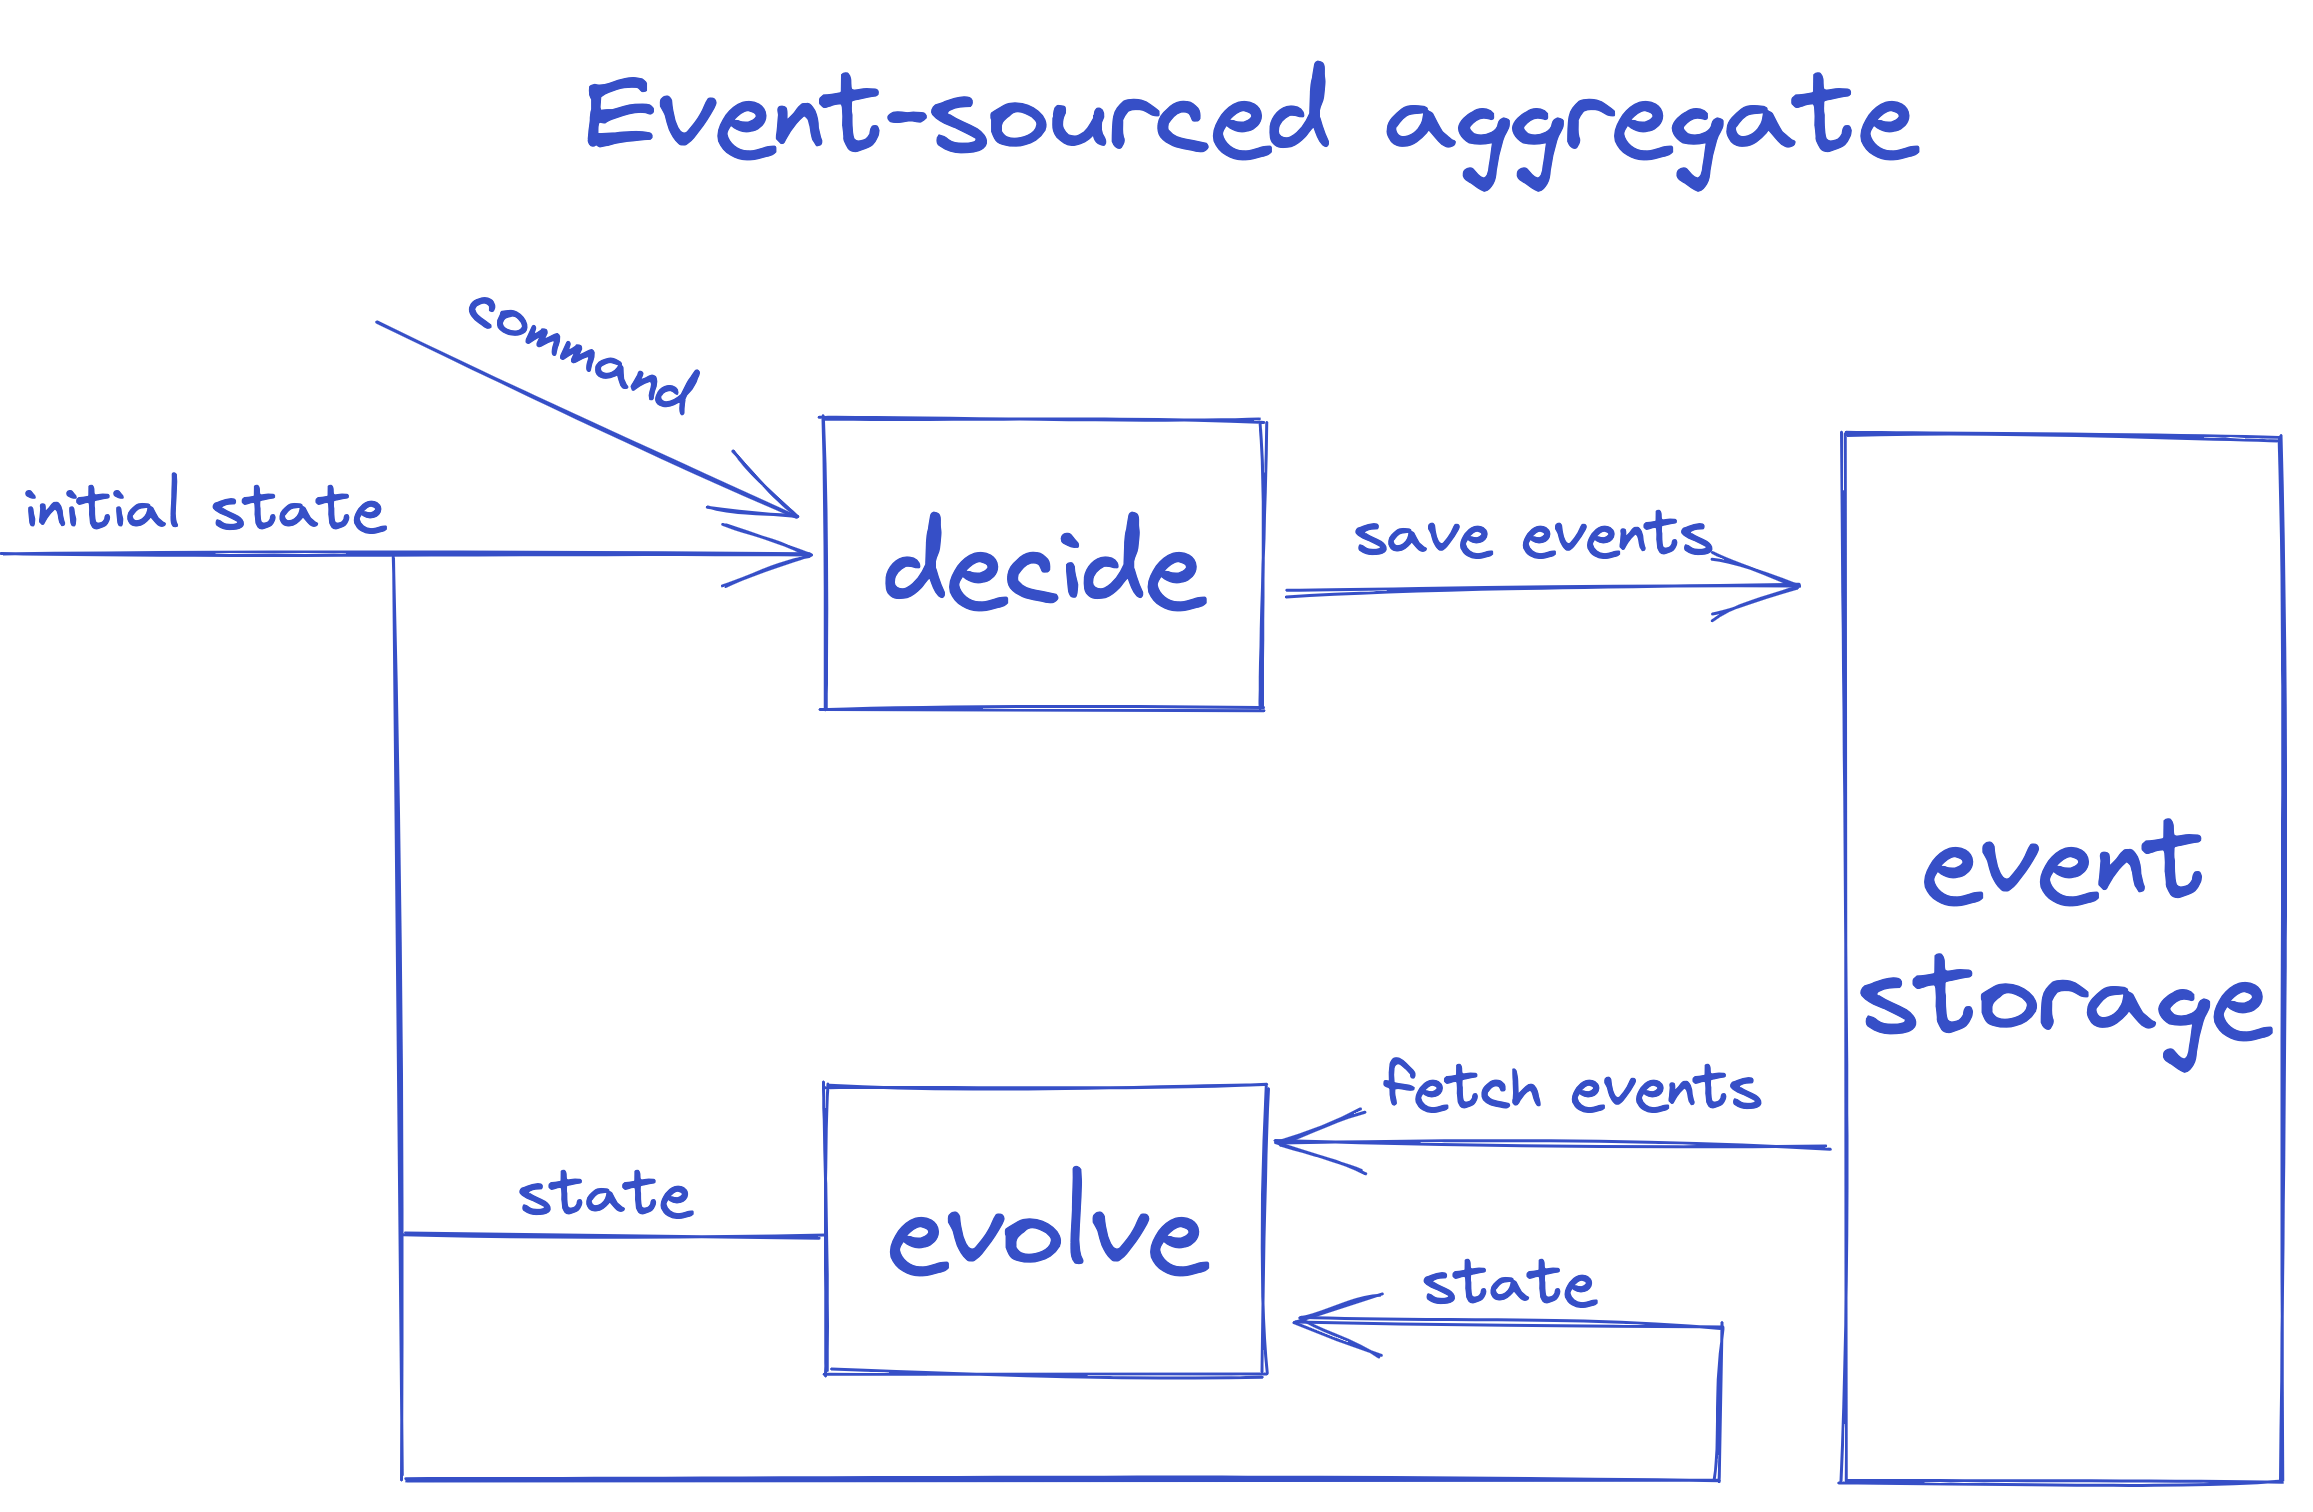 event sourced aggregate